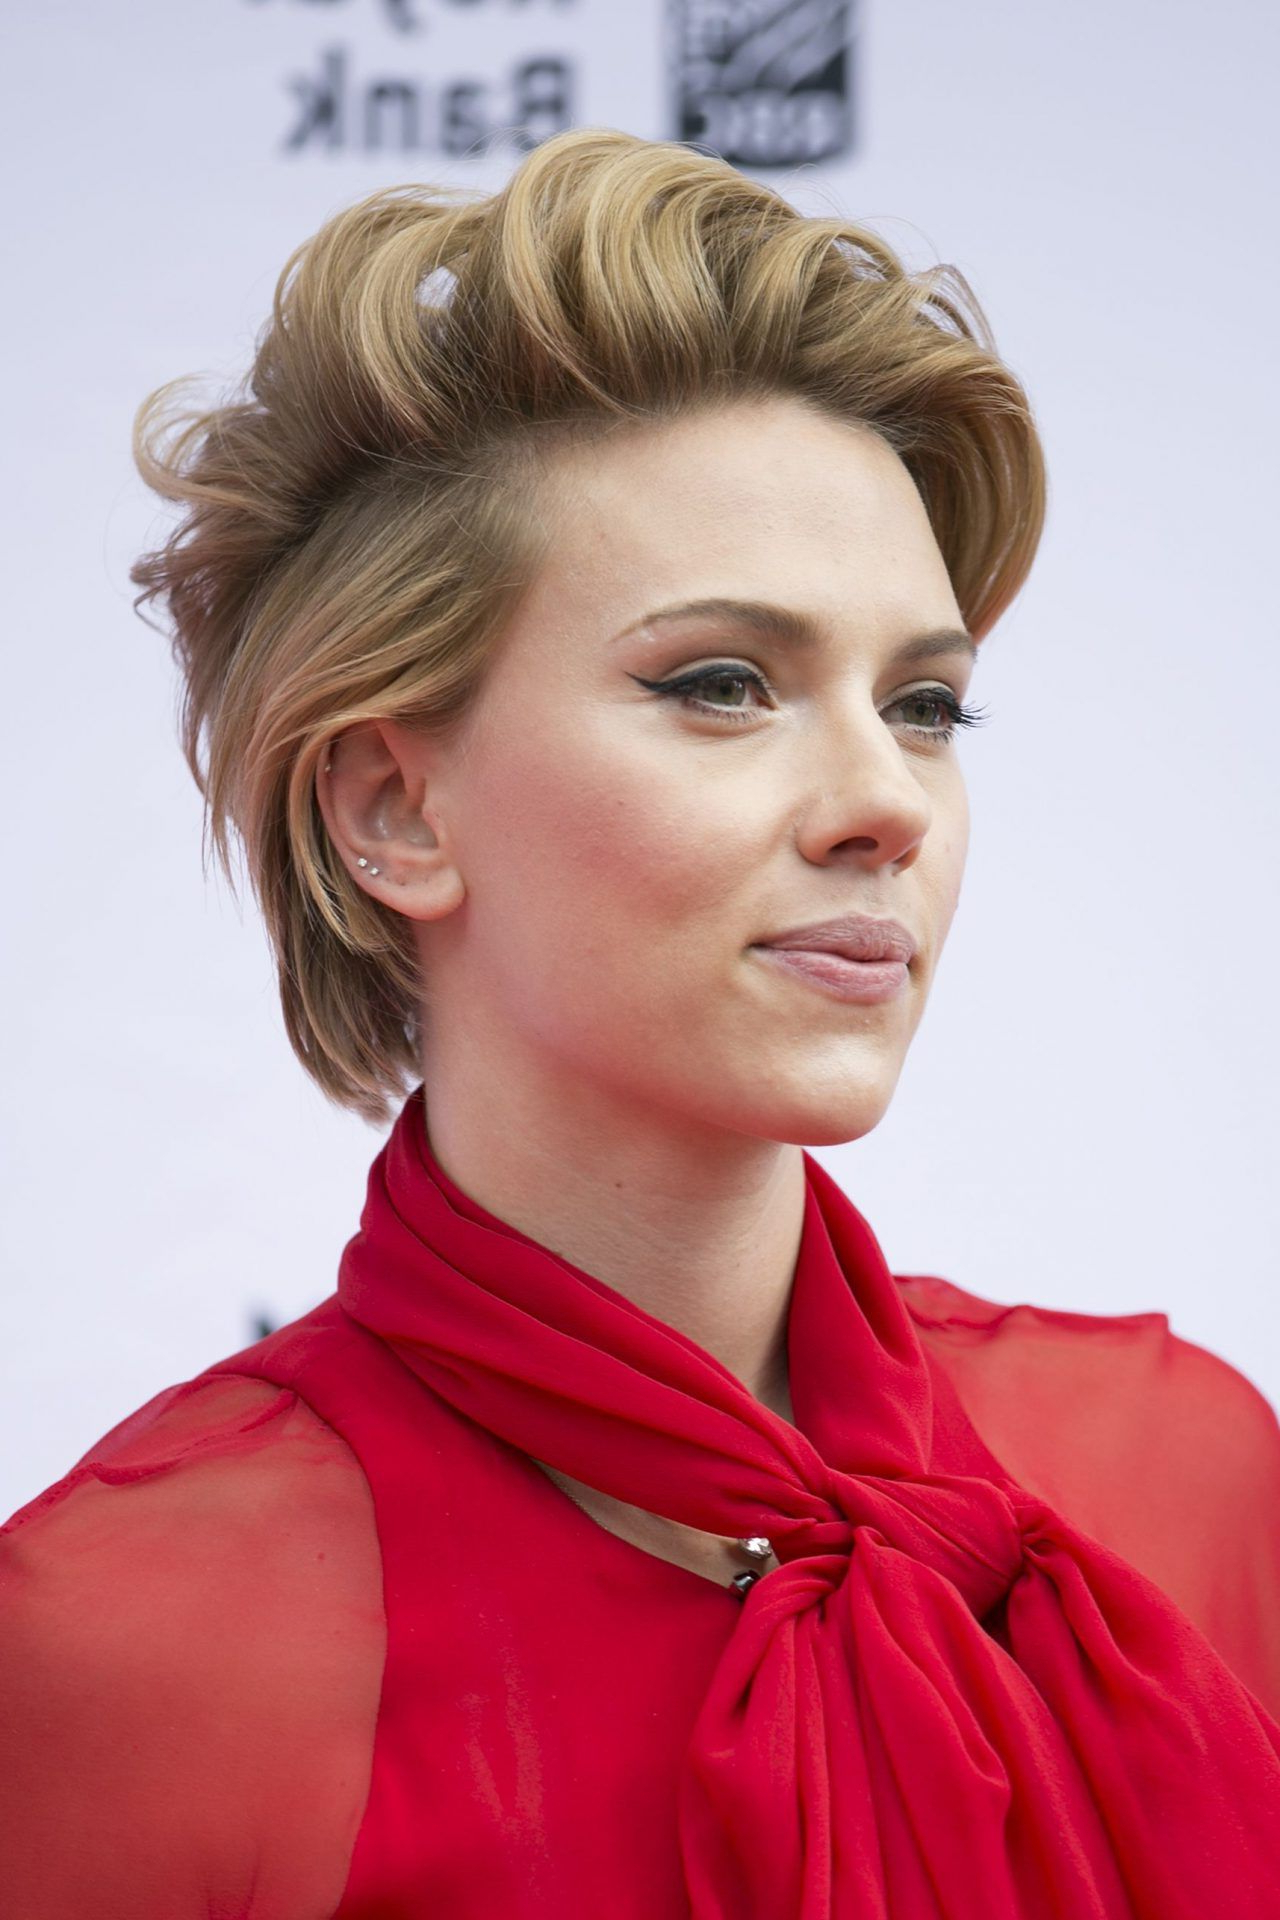 Hairstyles For Short Hair That'll Inspire You To Chop Off Your Locks Throughout Scarlett Johansson Short Hairstyles (View 25 of 25)